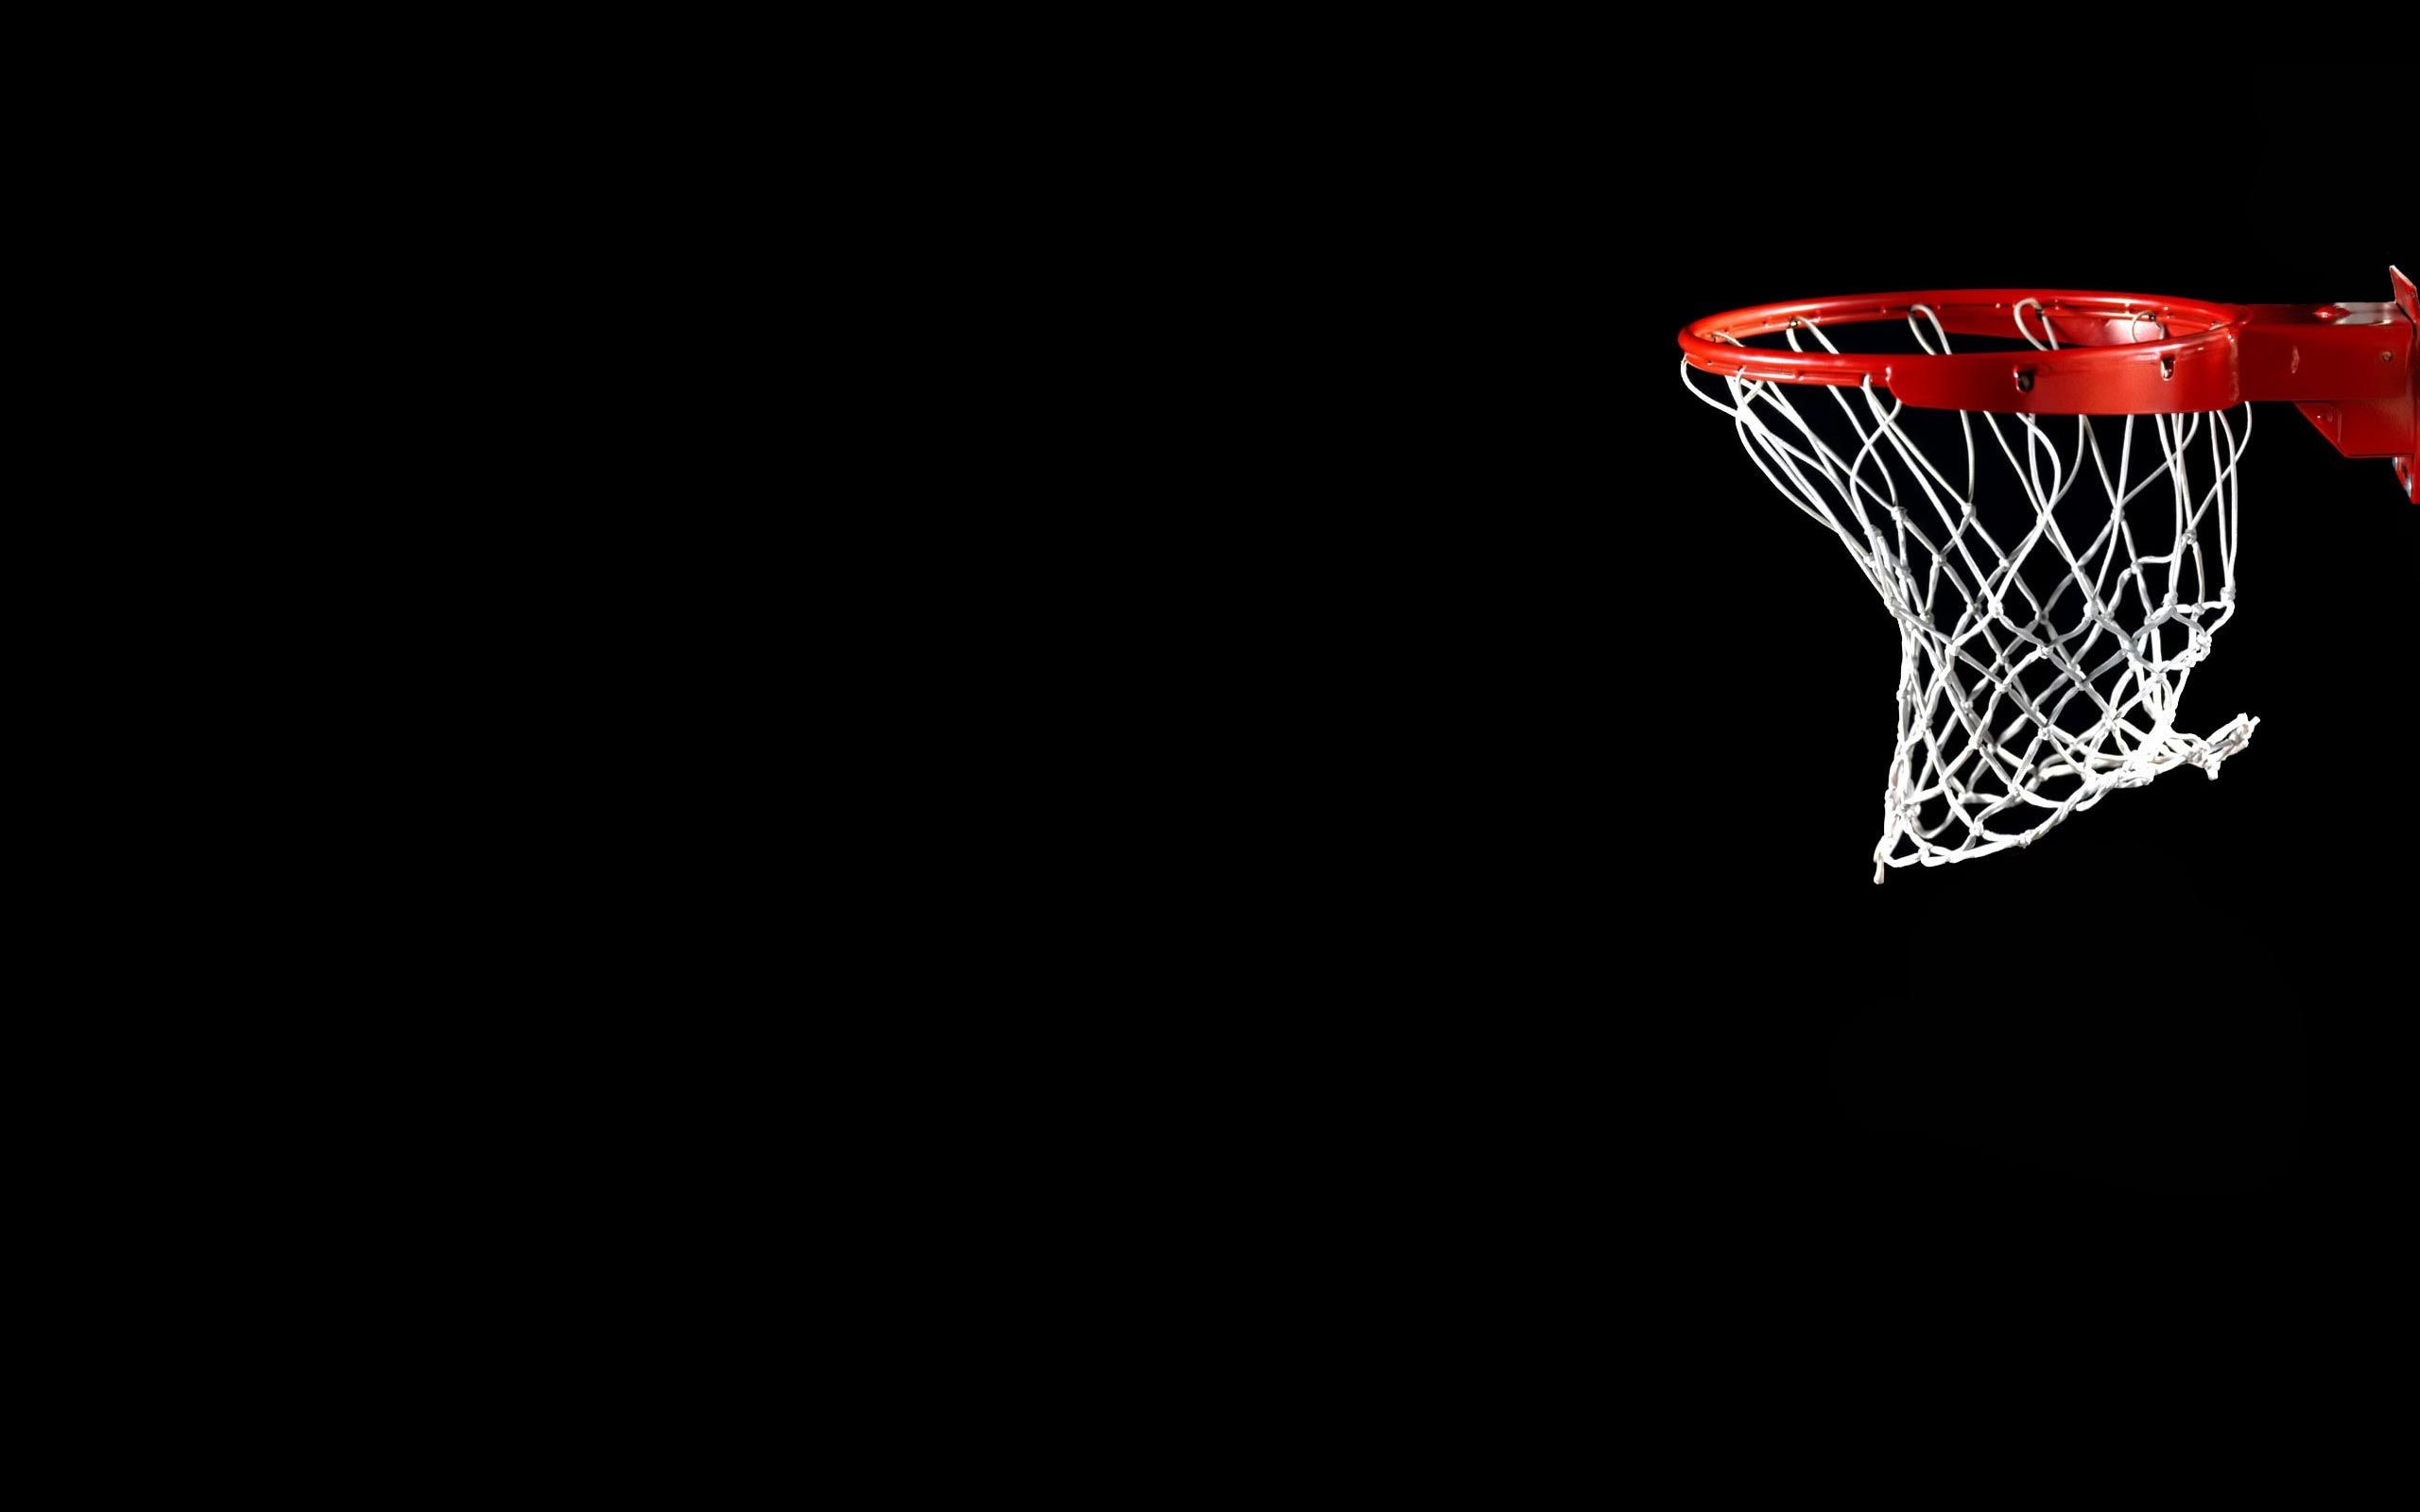 Res: 2560x1600, Nike Basketball Wallpaper Picture